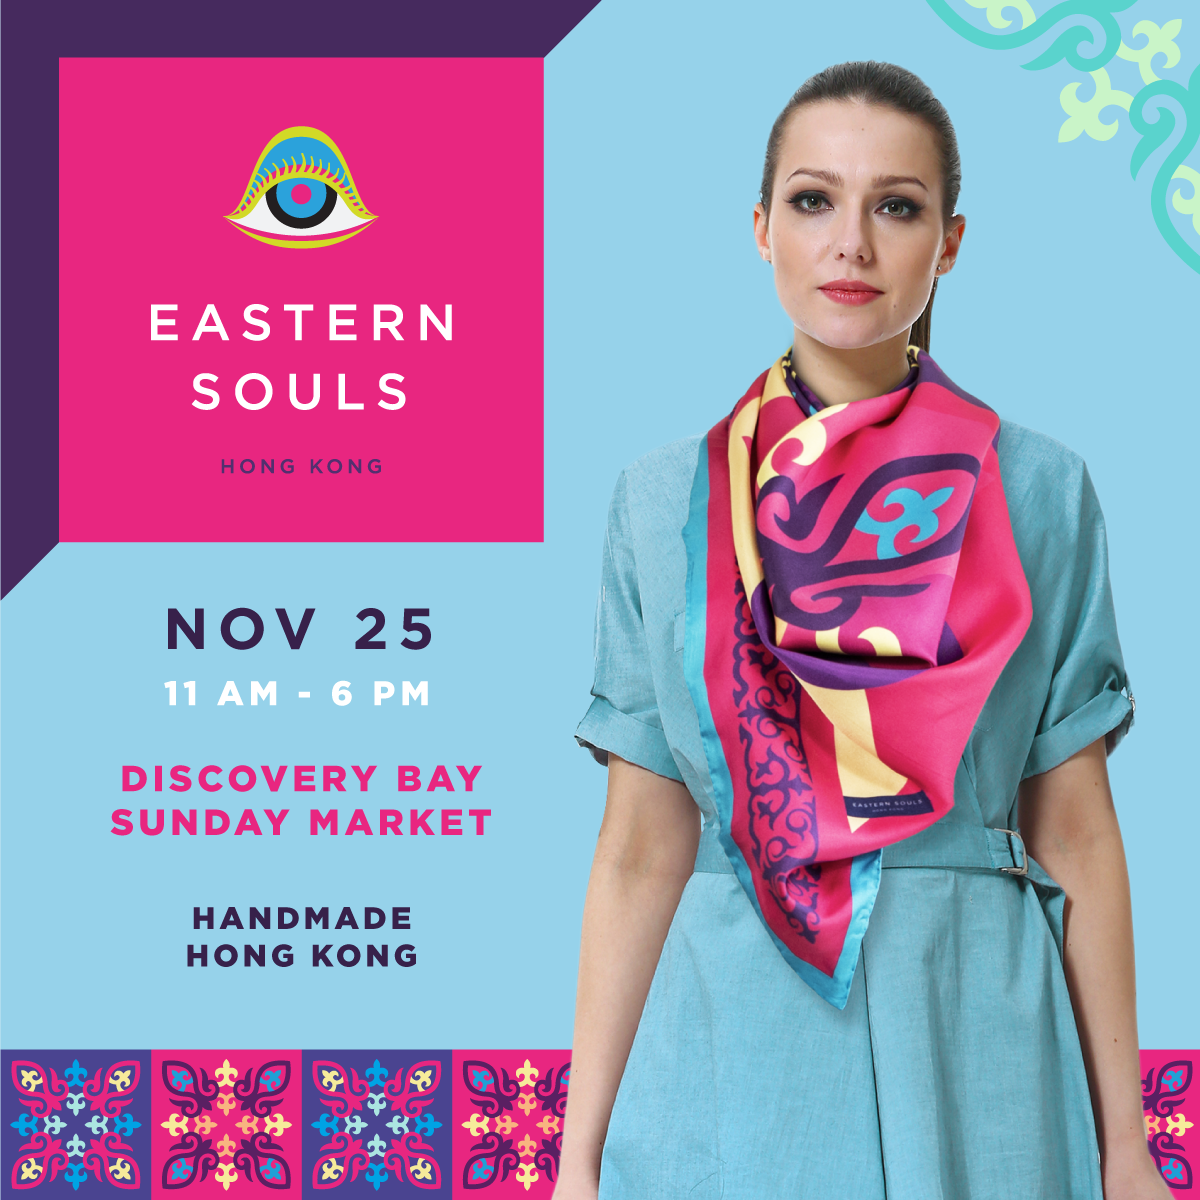 Eastern Souls Hong Kong Pop-Up at Discovery Bay Holiday Market